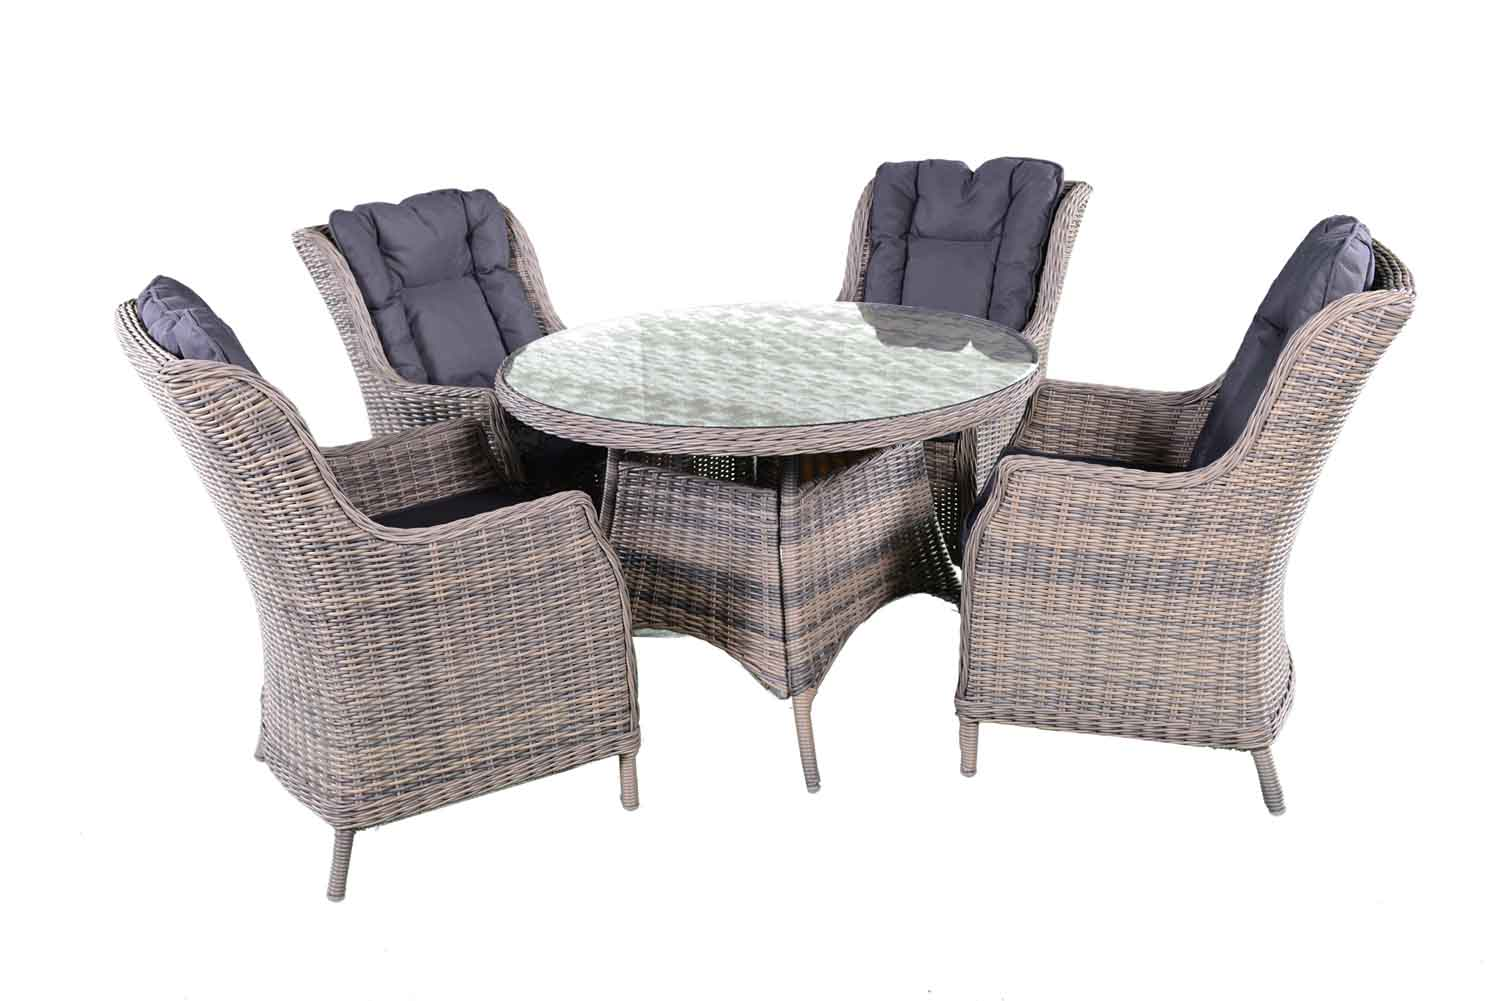 https://www.firstfurniture.co.uk/pub/media/catalog/product/k/n/knightsbridge_4_seat_round_dining_set_1.jpg